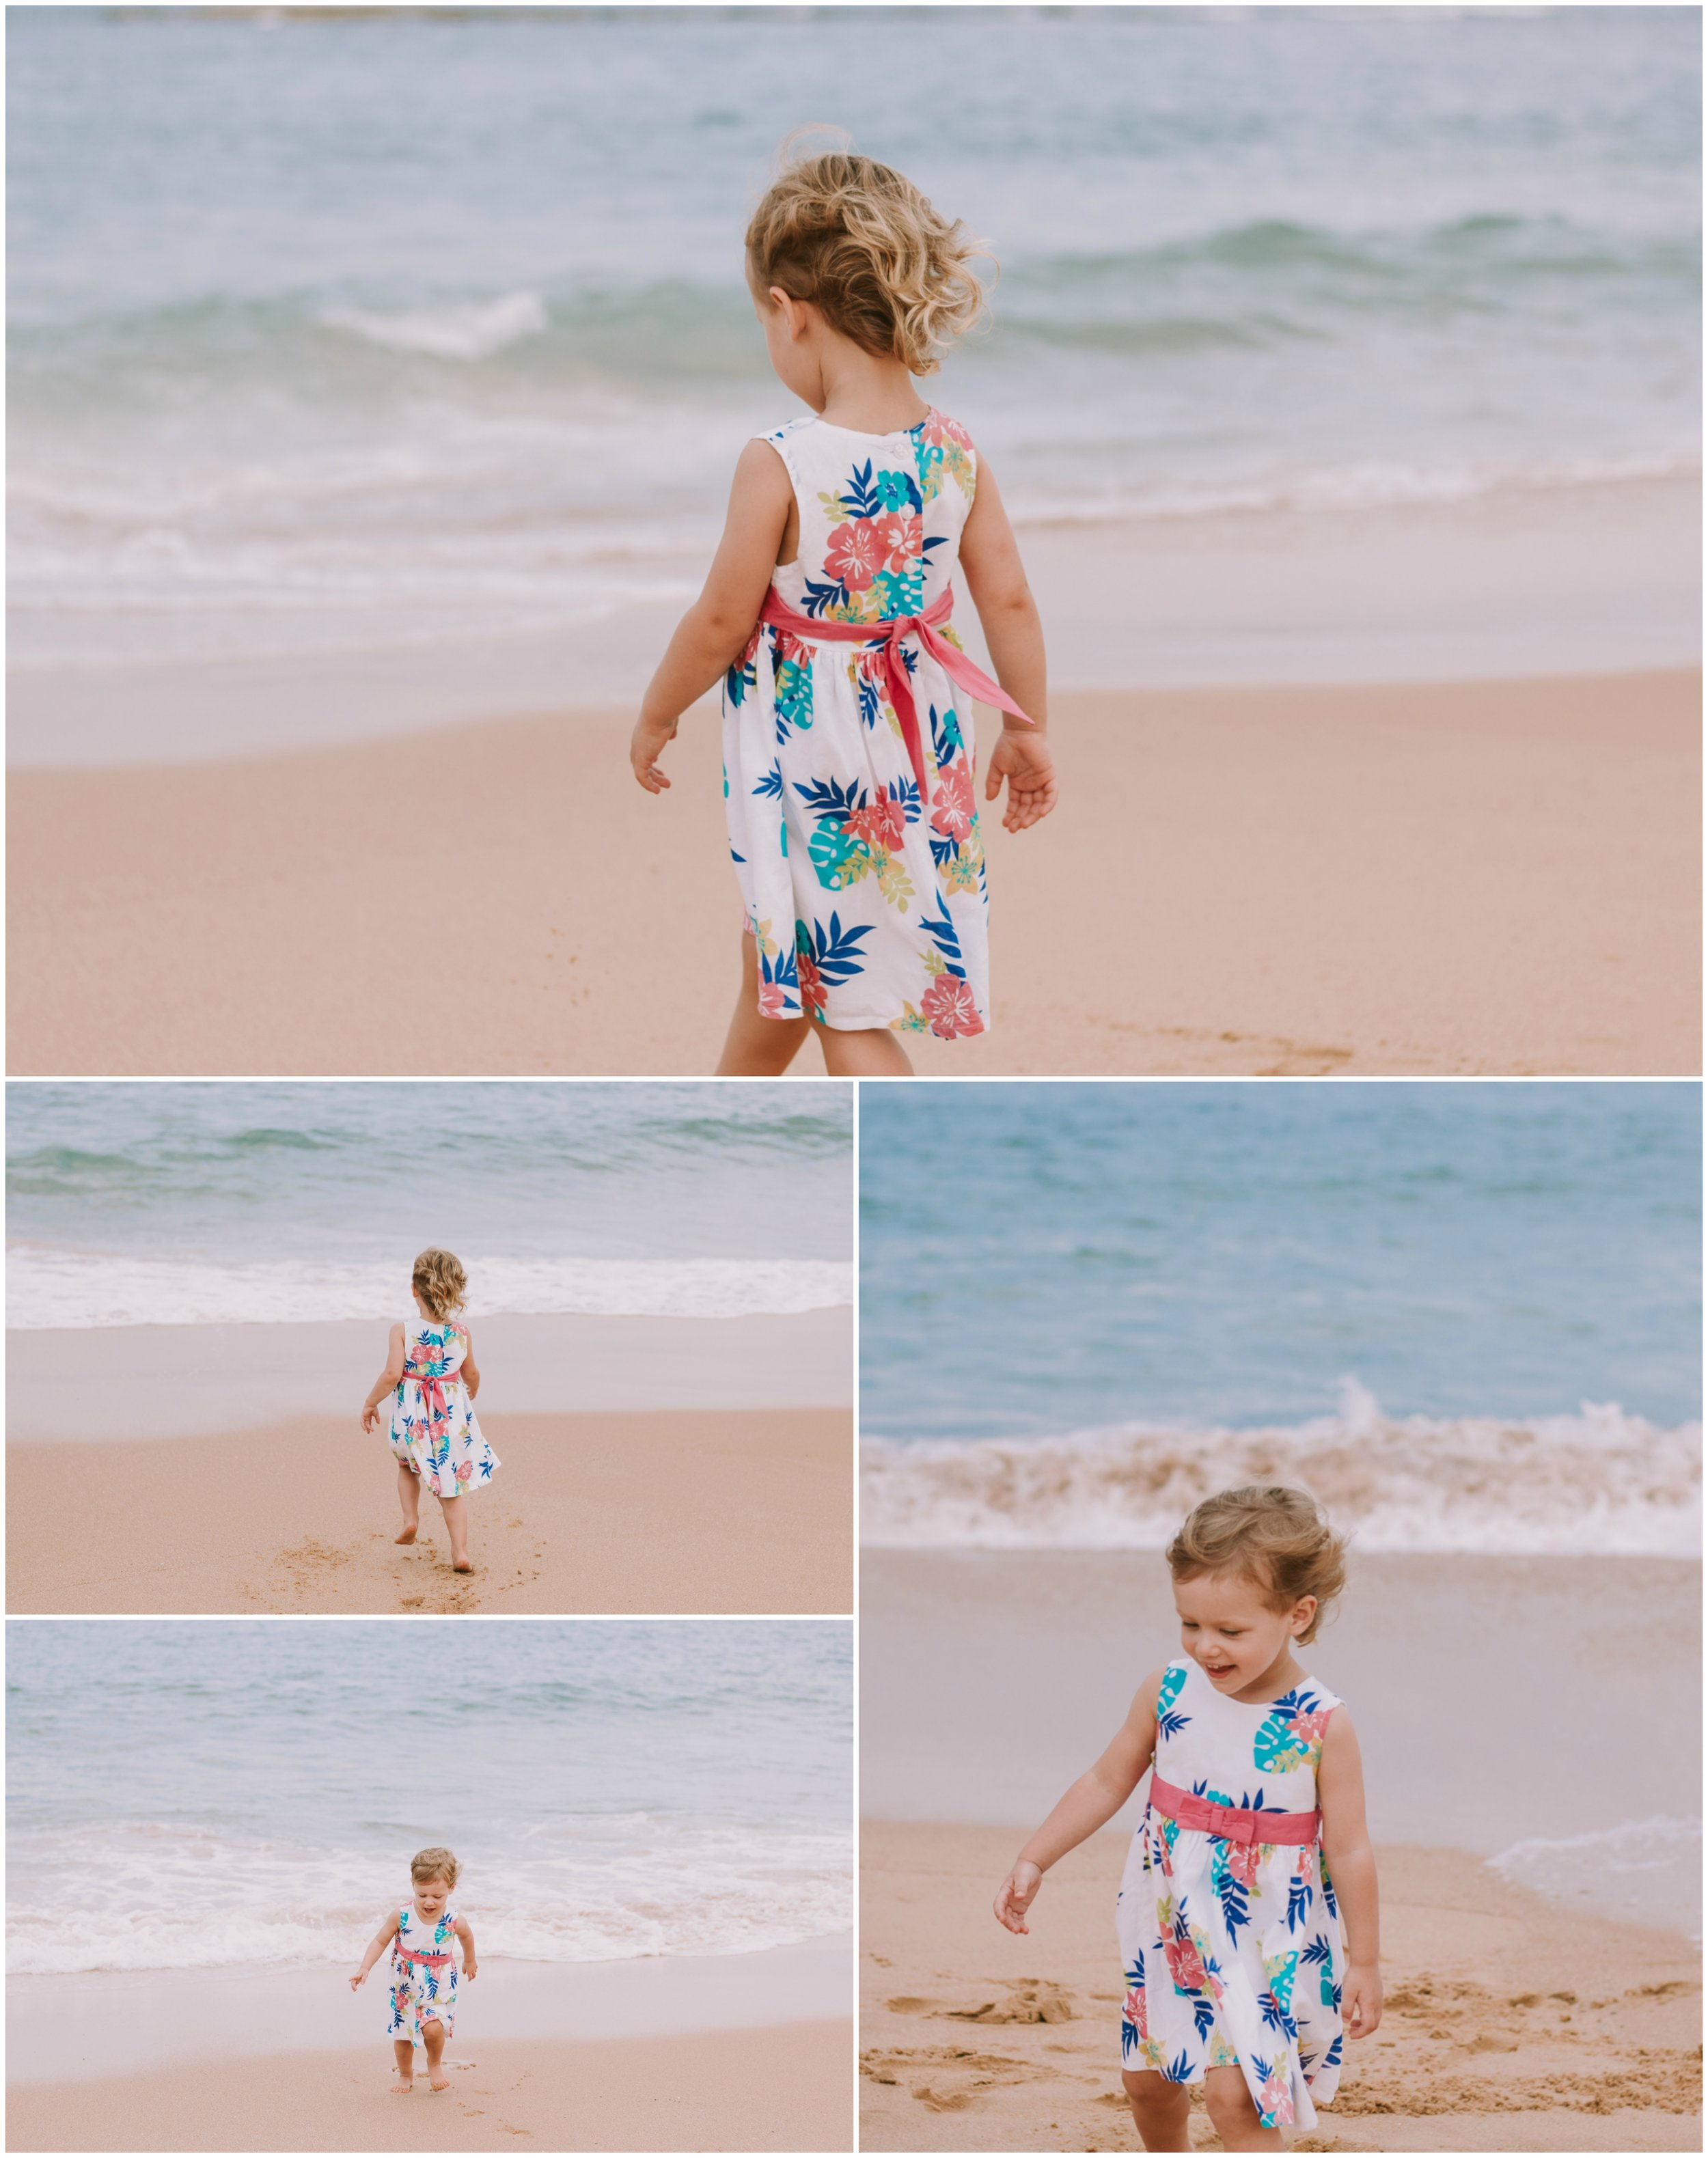 child running away from the waves